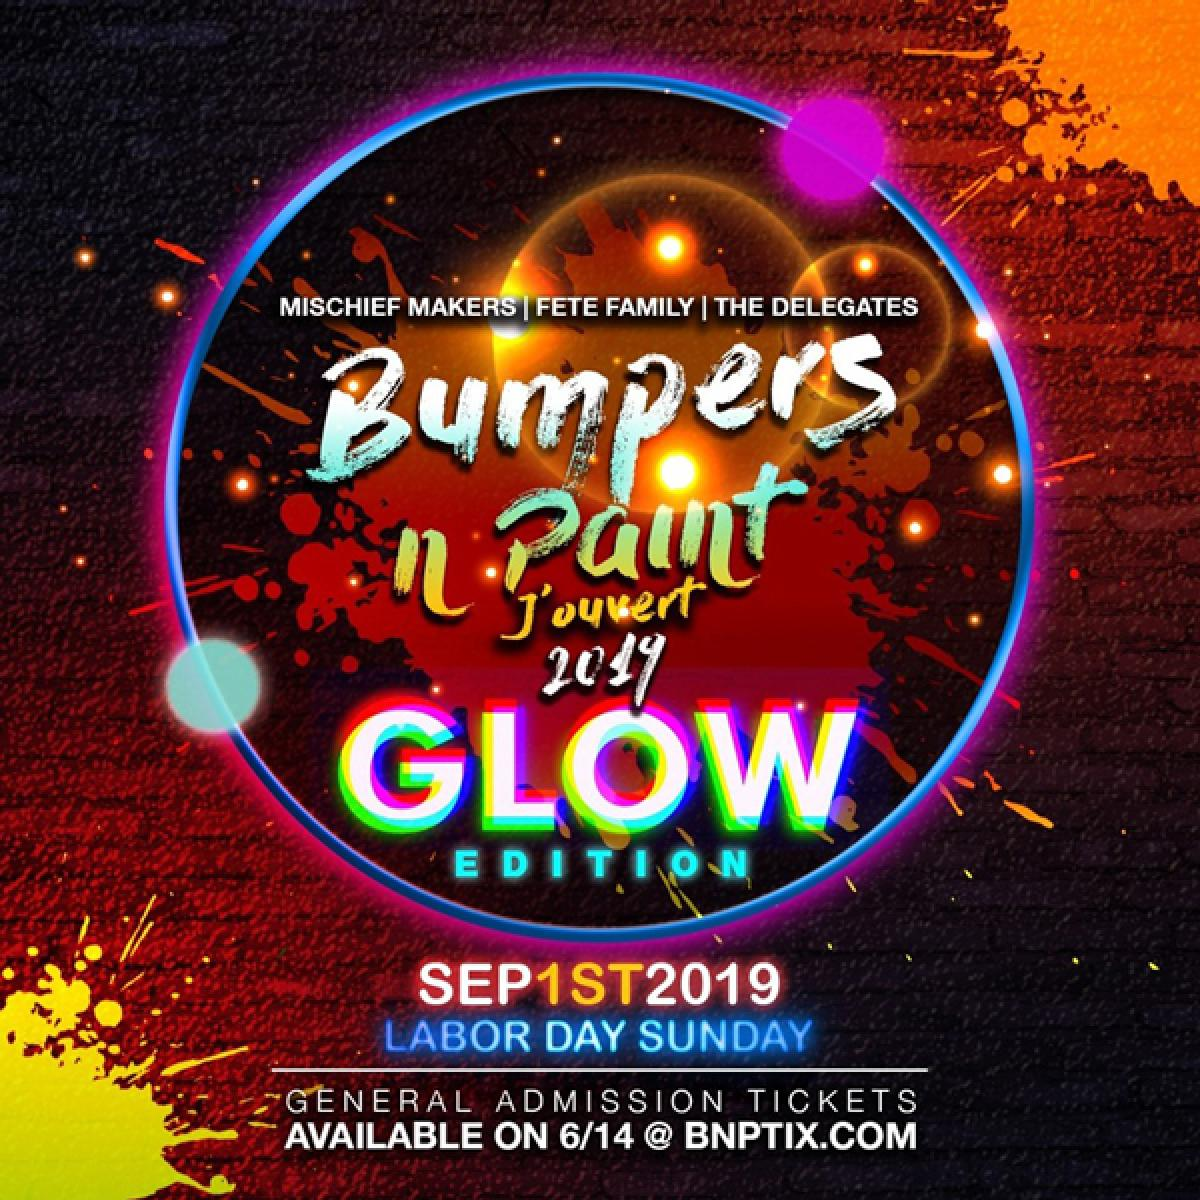 Bumpers n Paint J'ouvert flyer or graphic.